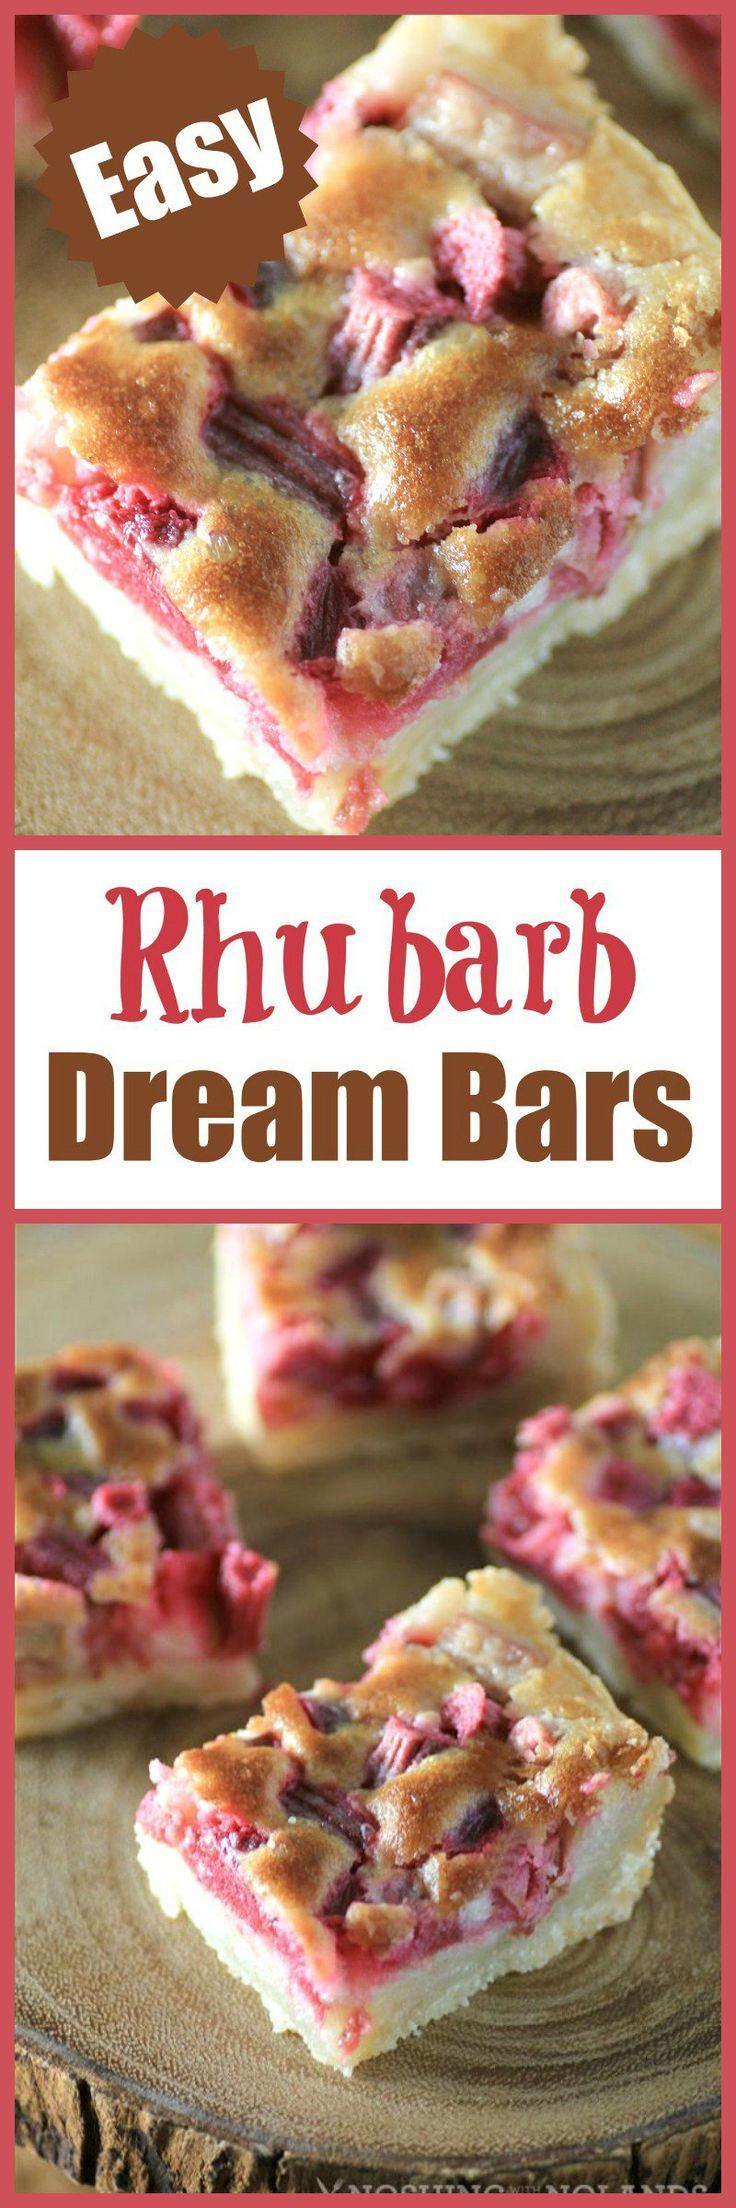 Rhubarb Dream Bars by Noshing With The Nolands - A creamy rhubarb custard nestled into a flaky butter crust. The perfect spring dessert recipe.: